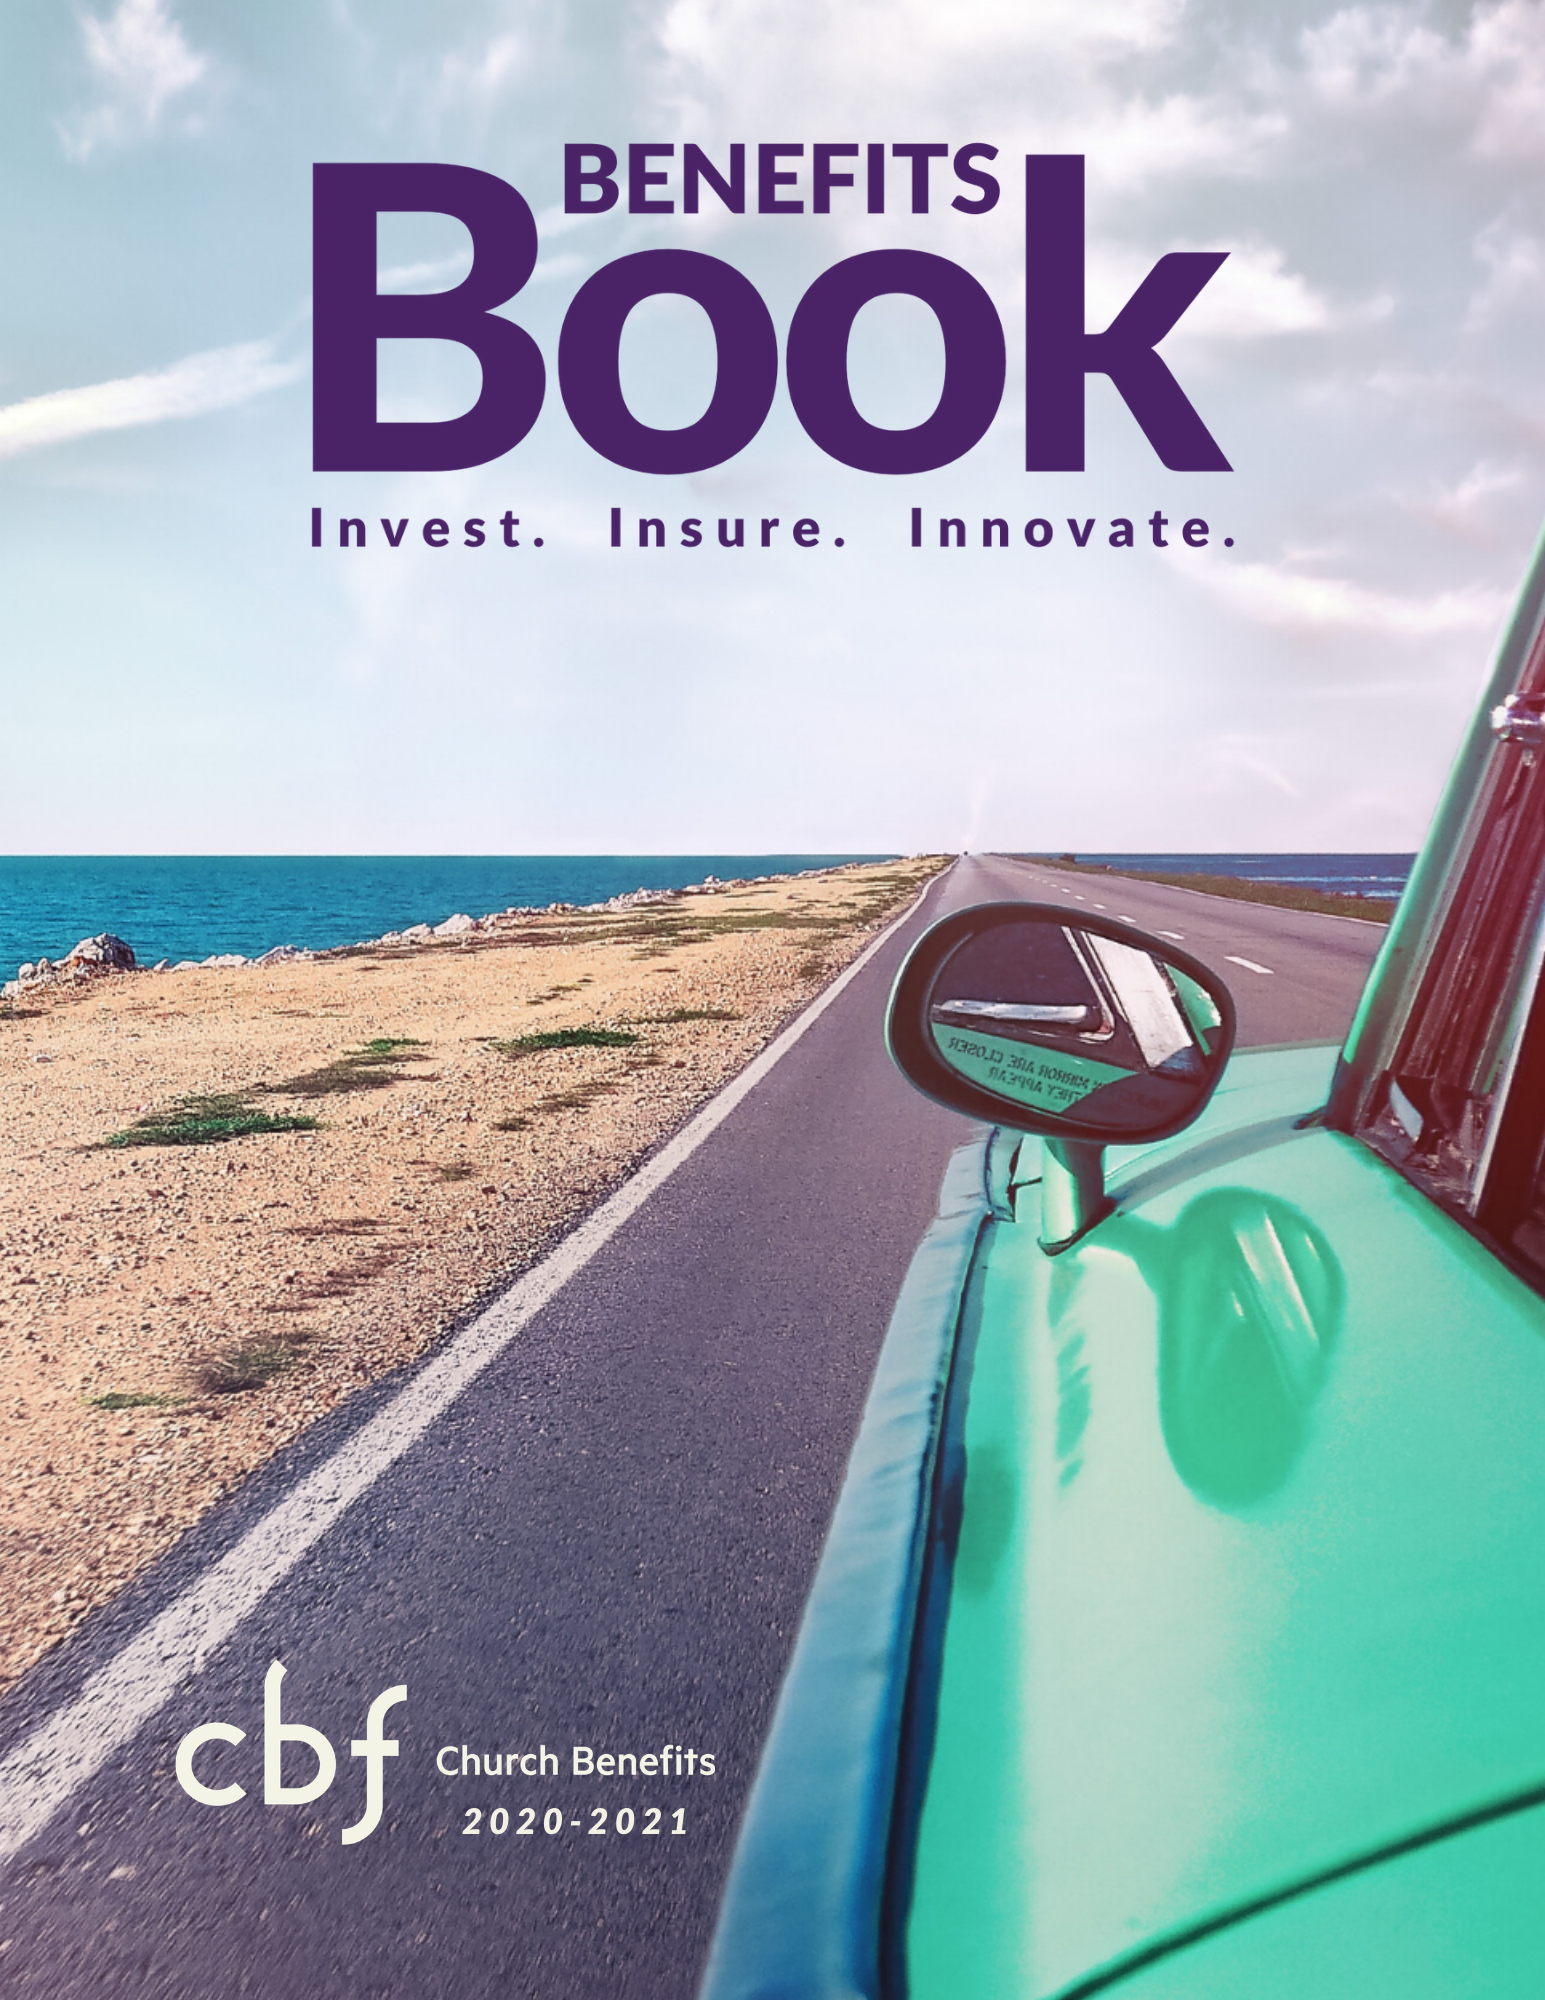 BBOOK-2020-COVER-IMAGE-1.png